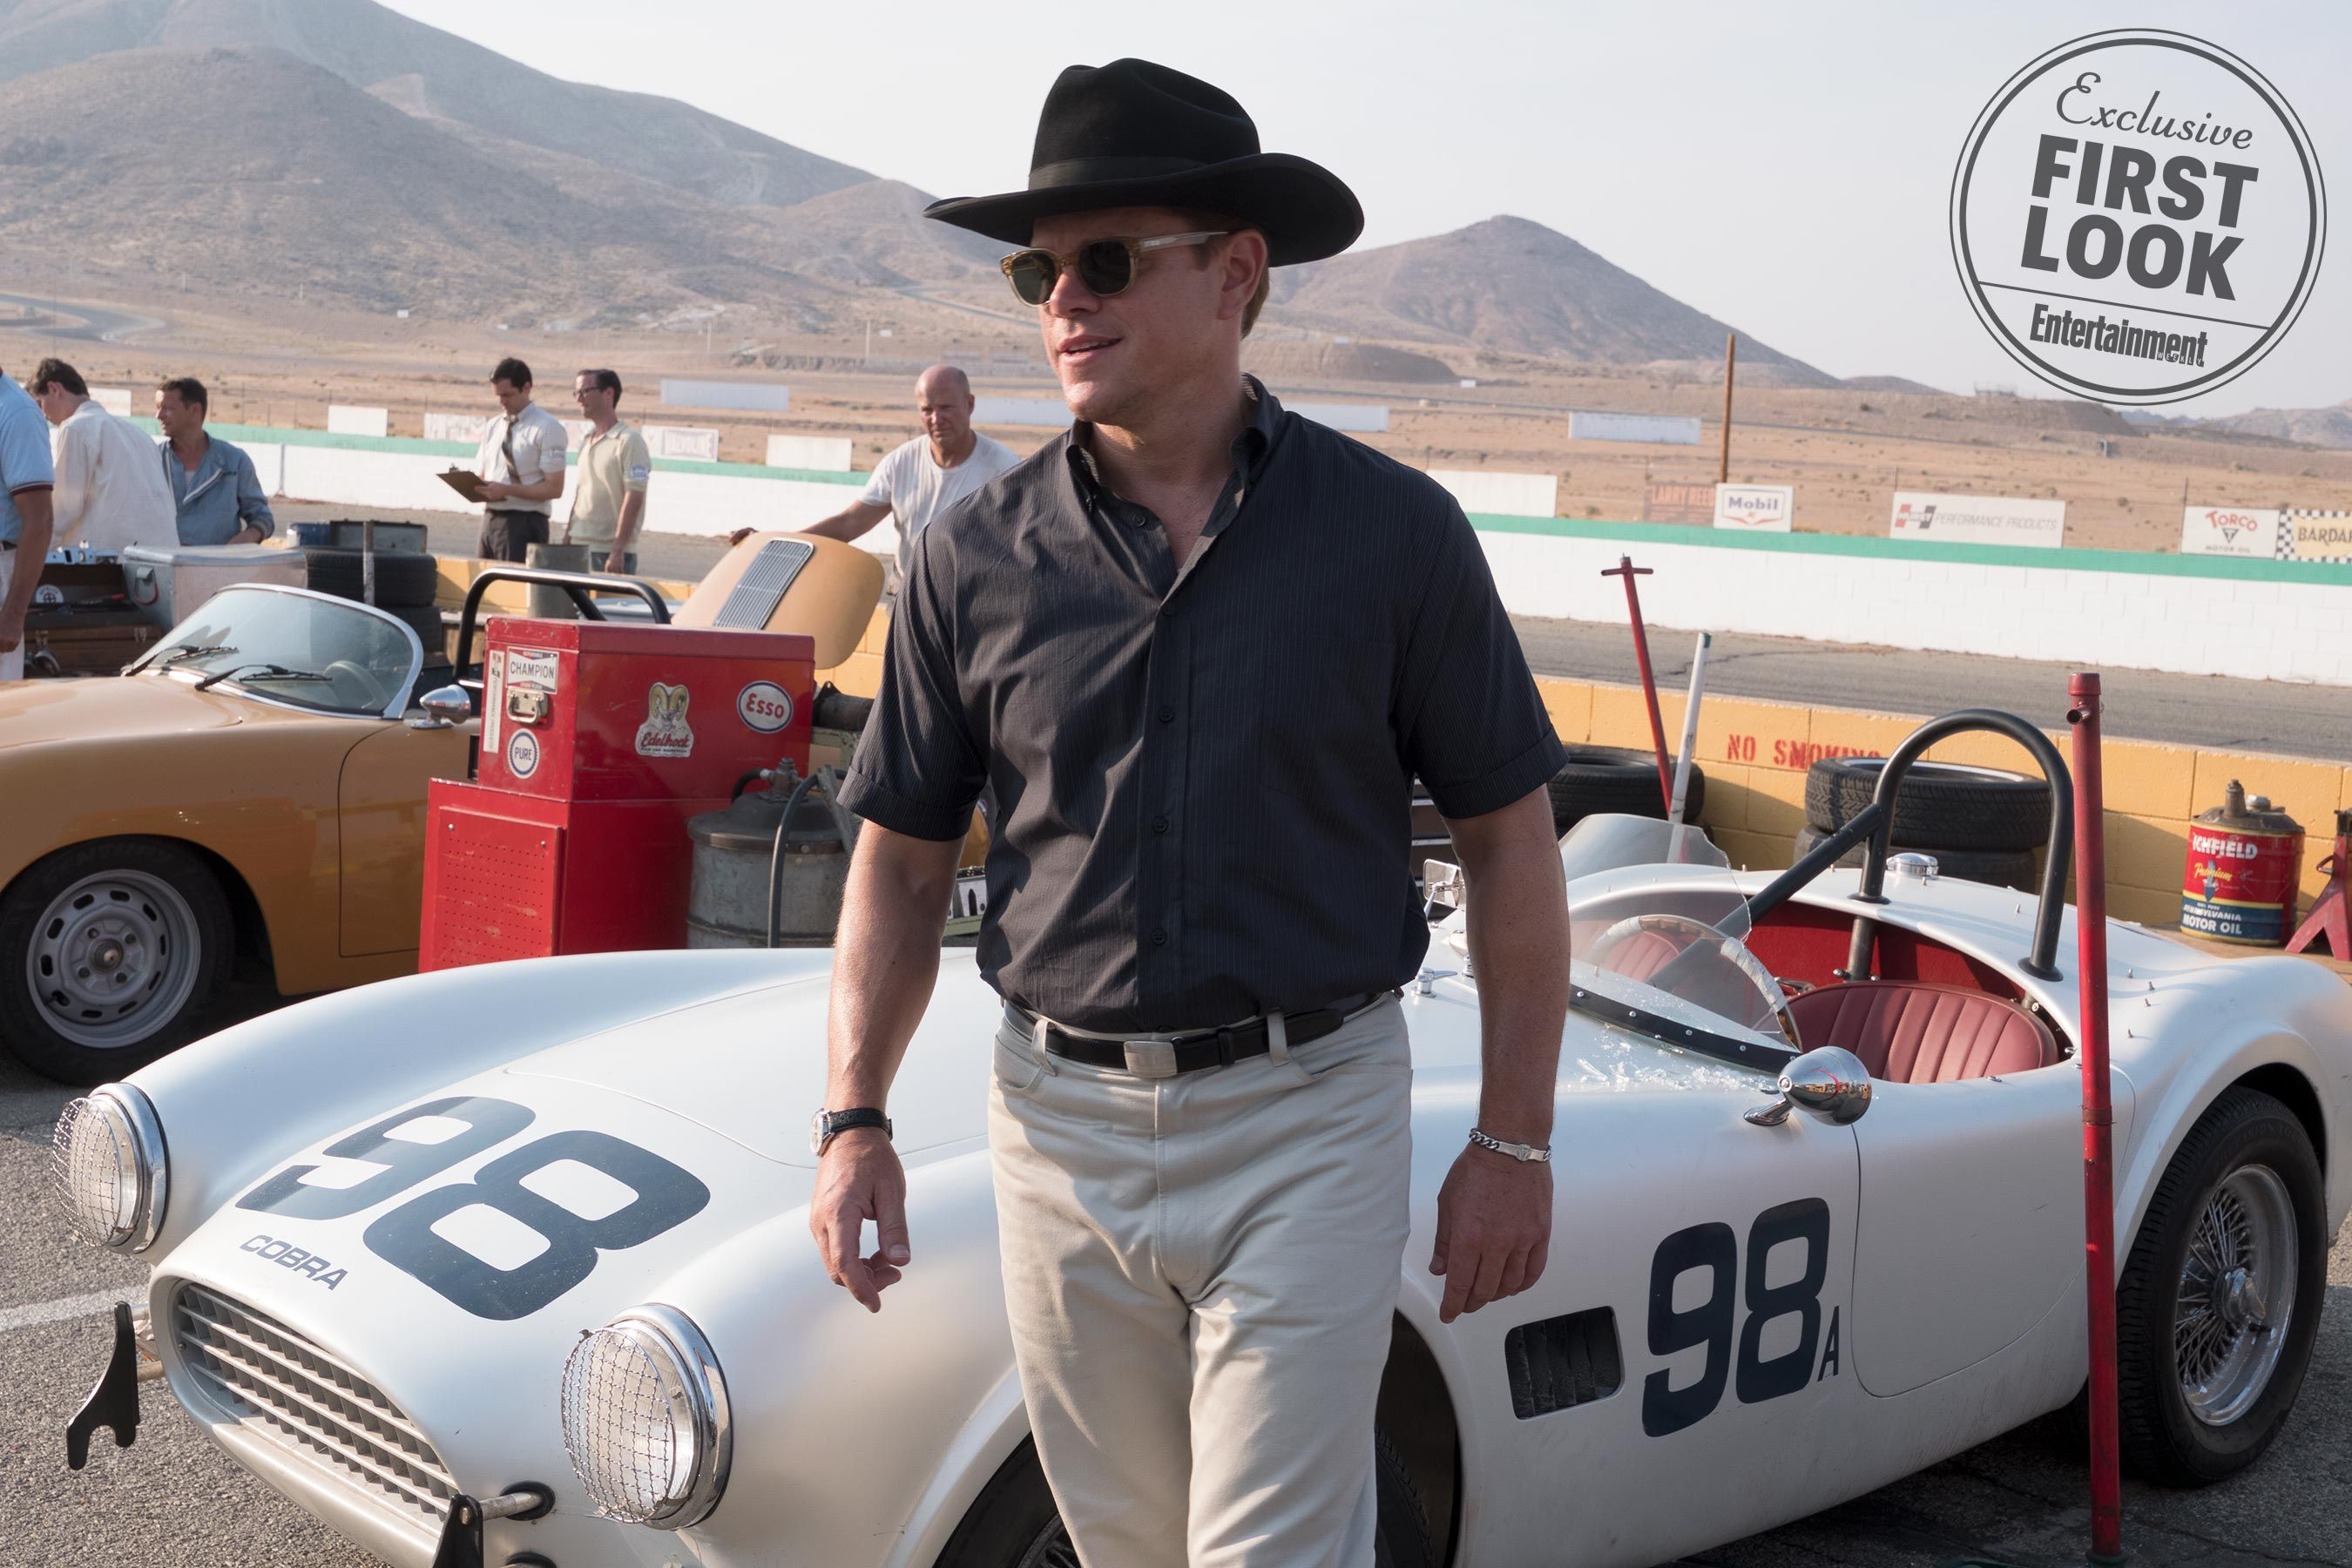 Exclusive Christian Bale Matt Damon Strap In For Ford V Ferrari